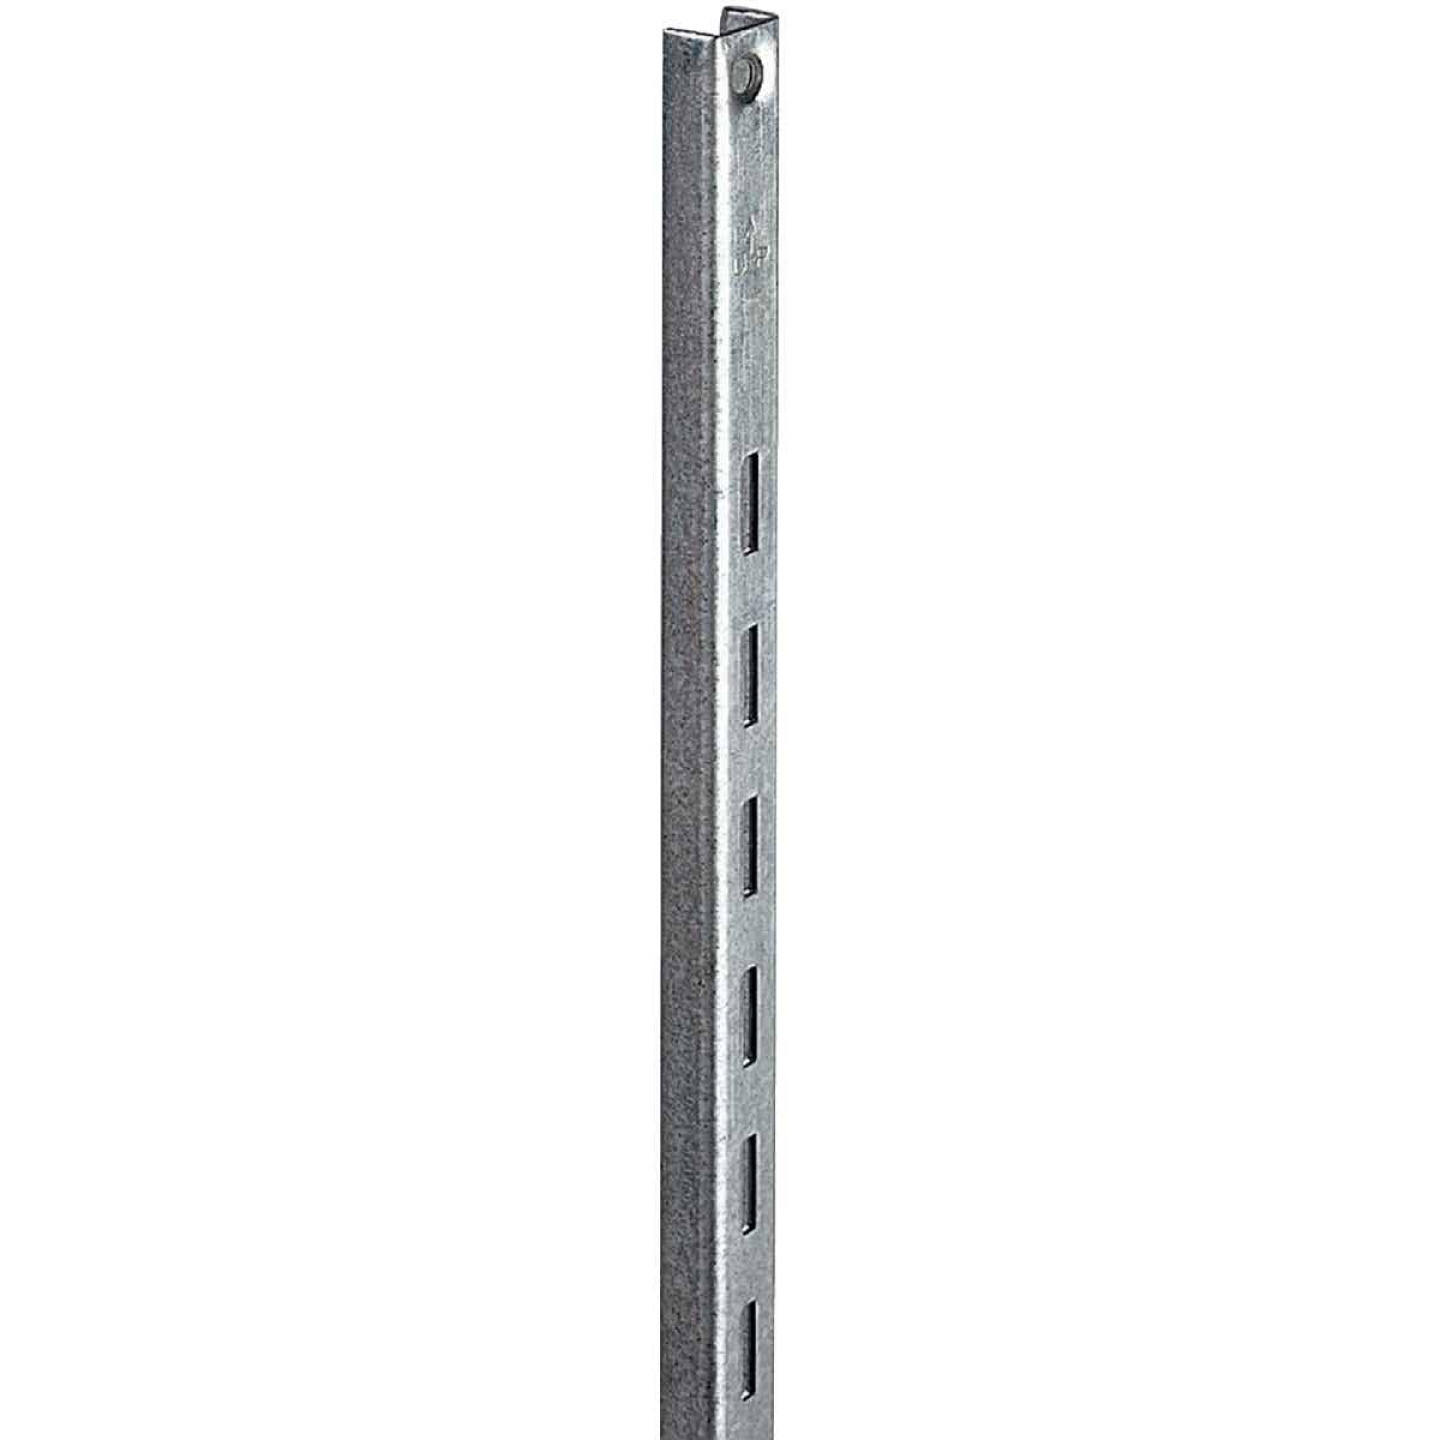 Knape & Vogt 80 Series 24 In. Titanium Steel Adjustable Shelf Standard Image 1